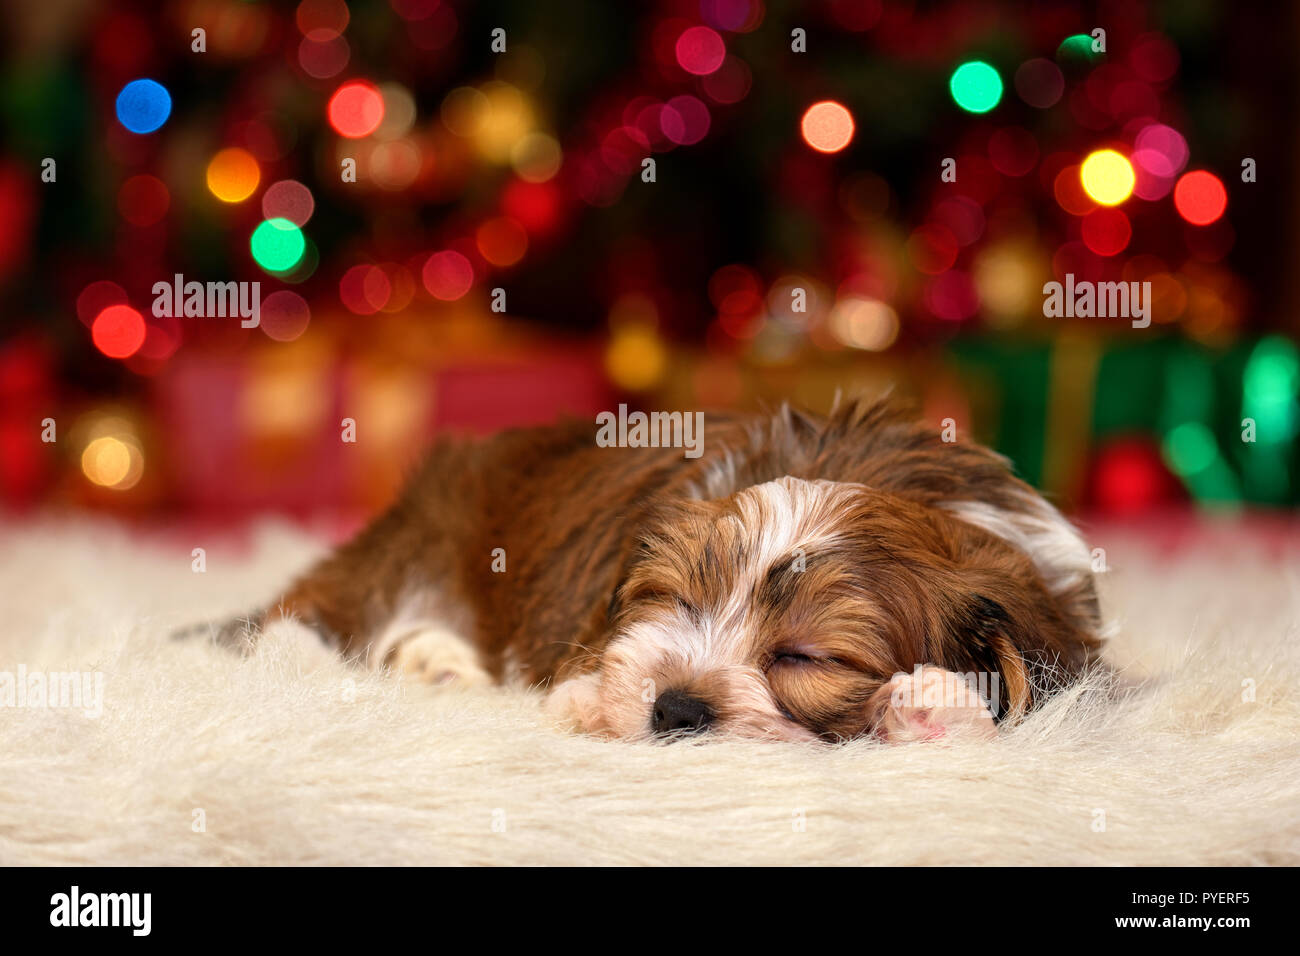 Cute sleeping Bichon Havanese puppy dog is dreaming about Christmas - Stock Image